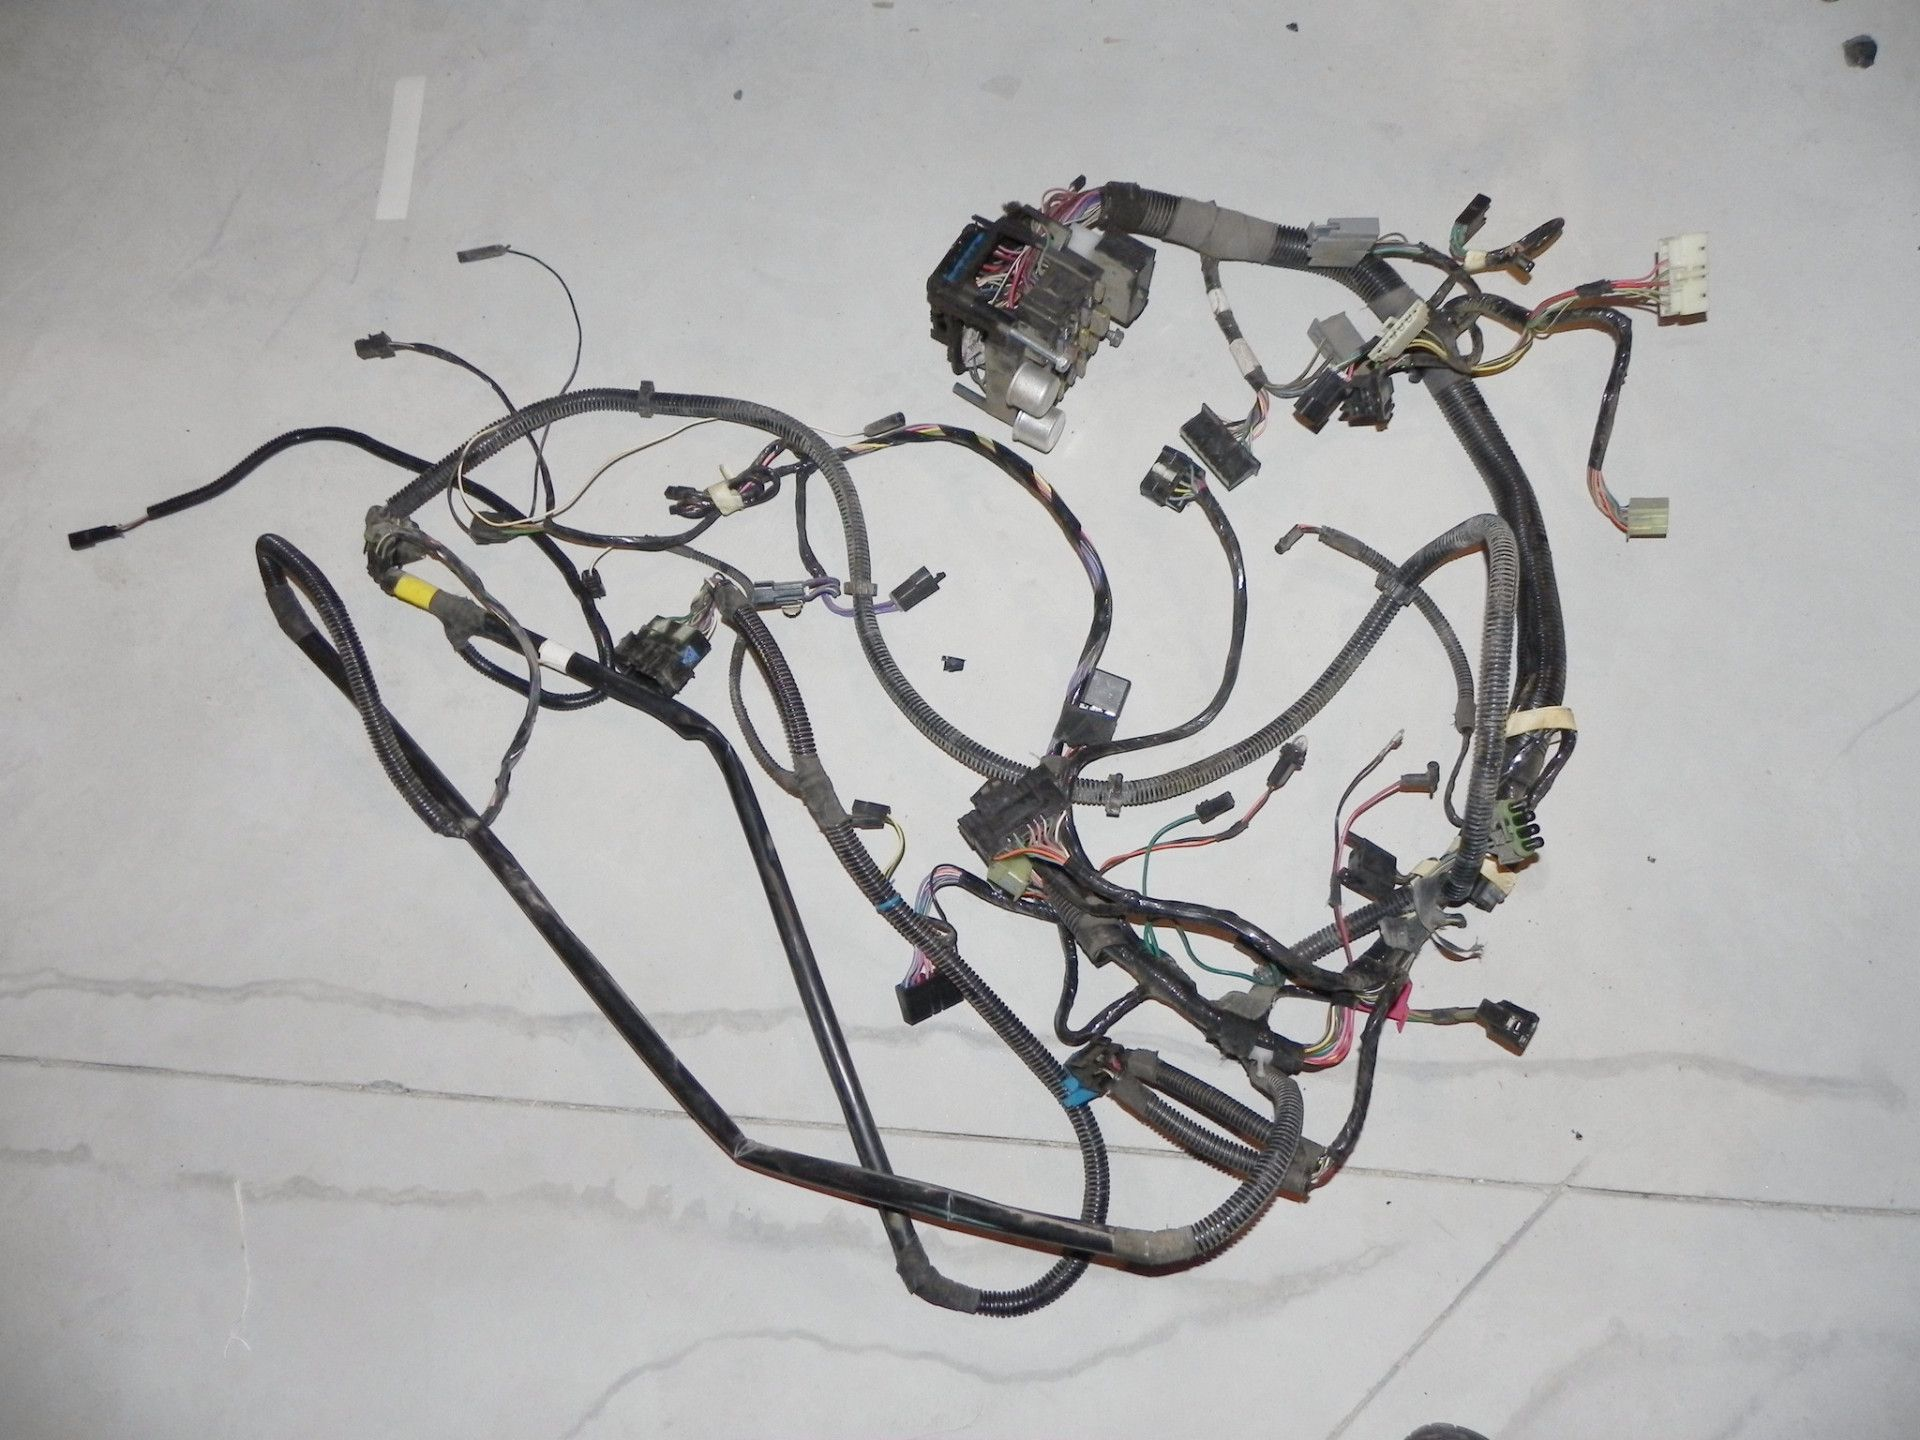 1ac84ff66da6ba86e03de6b4e4edac74 jeep wrangler yj interior under dash wiring harness 92 95 jeep 1987 jeep wrangler wiring harness at readyjetset.co